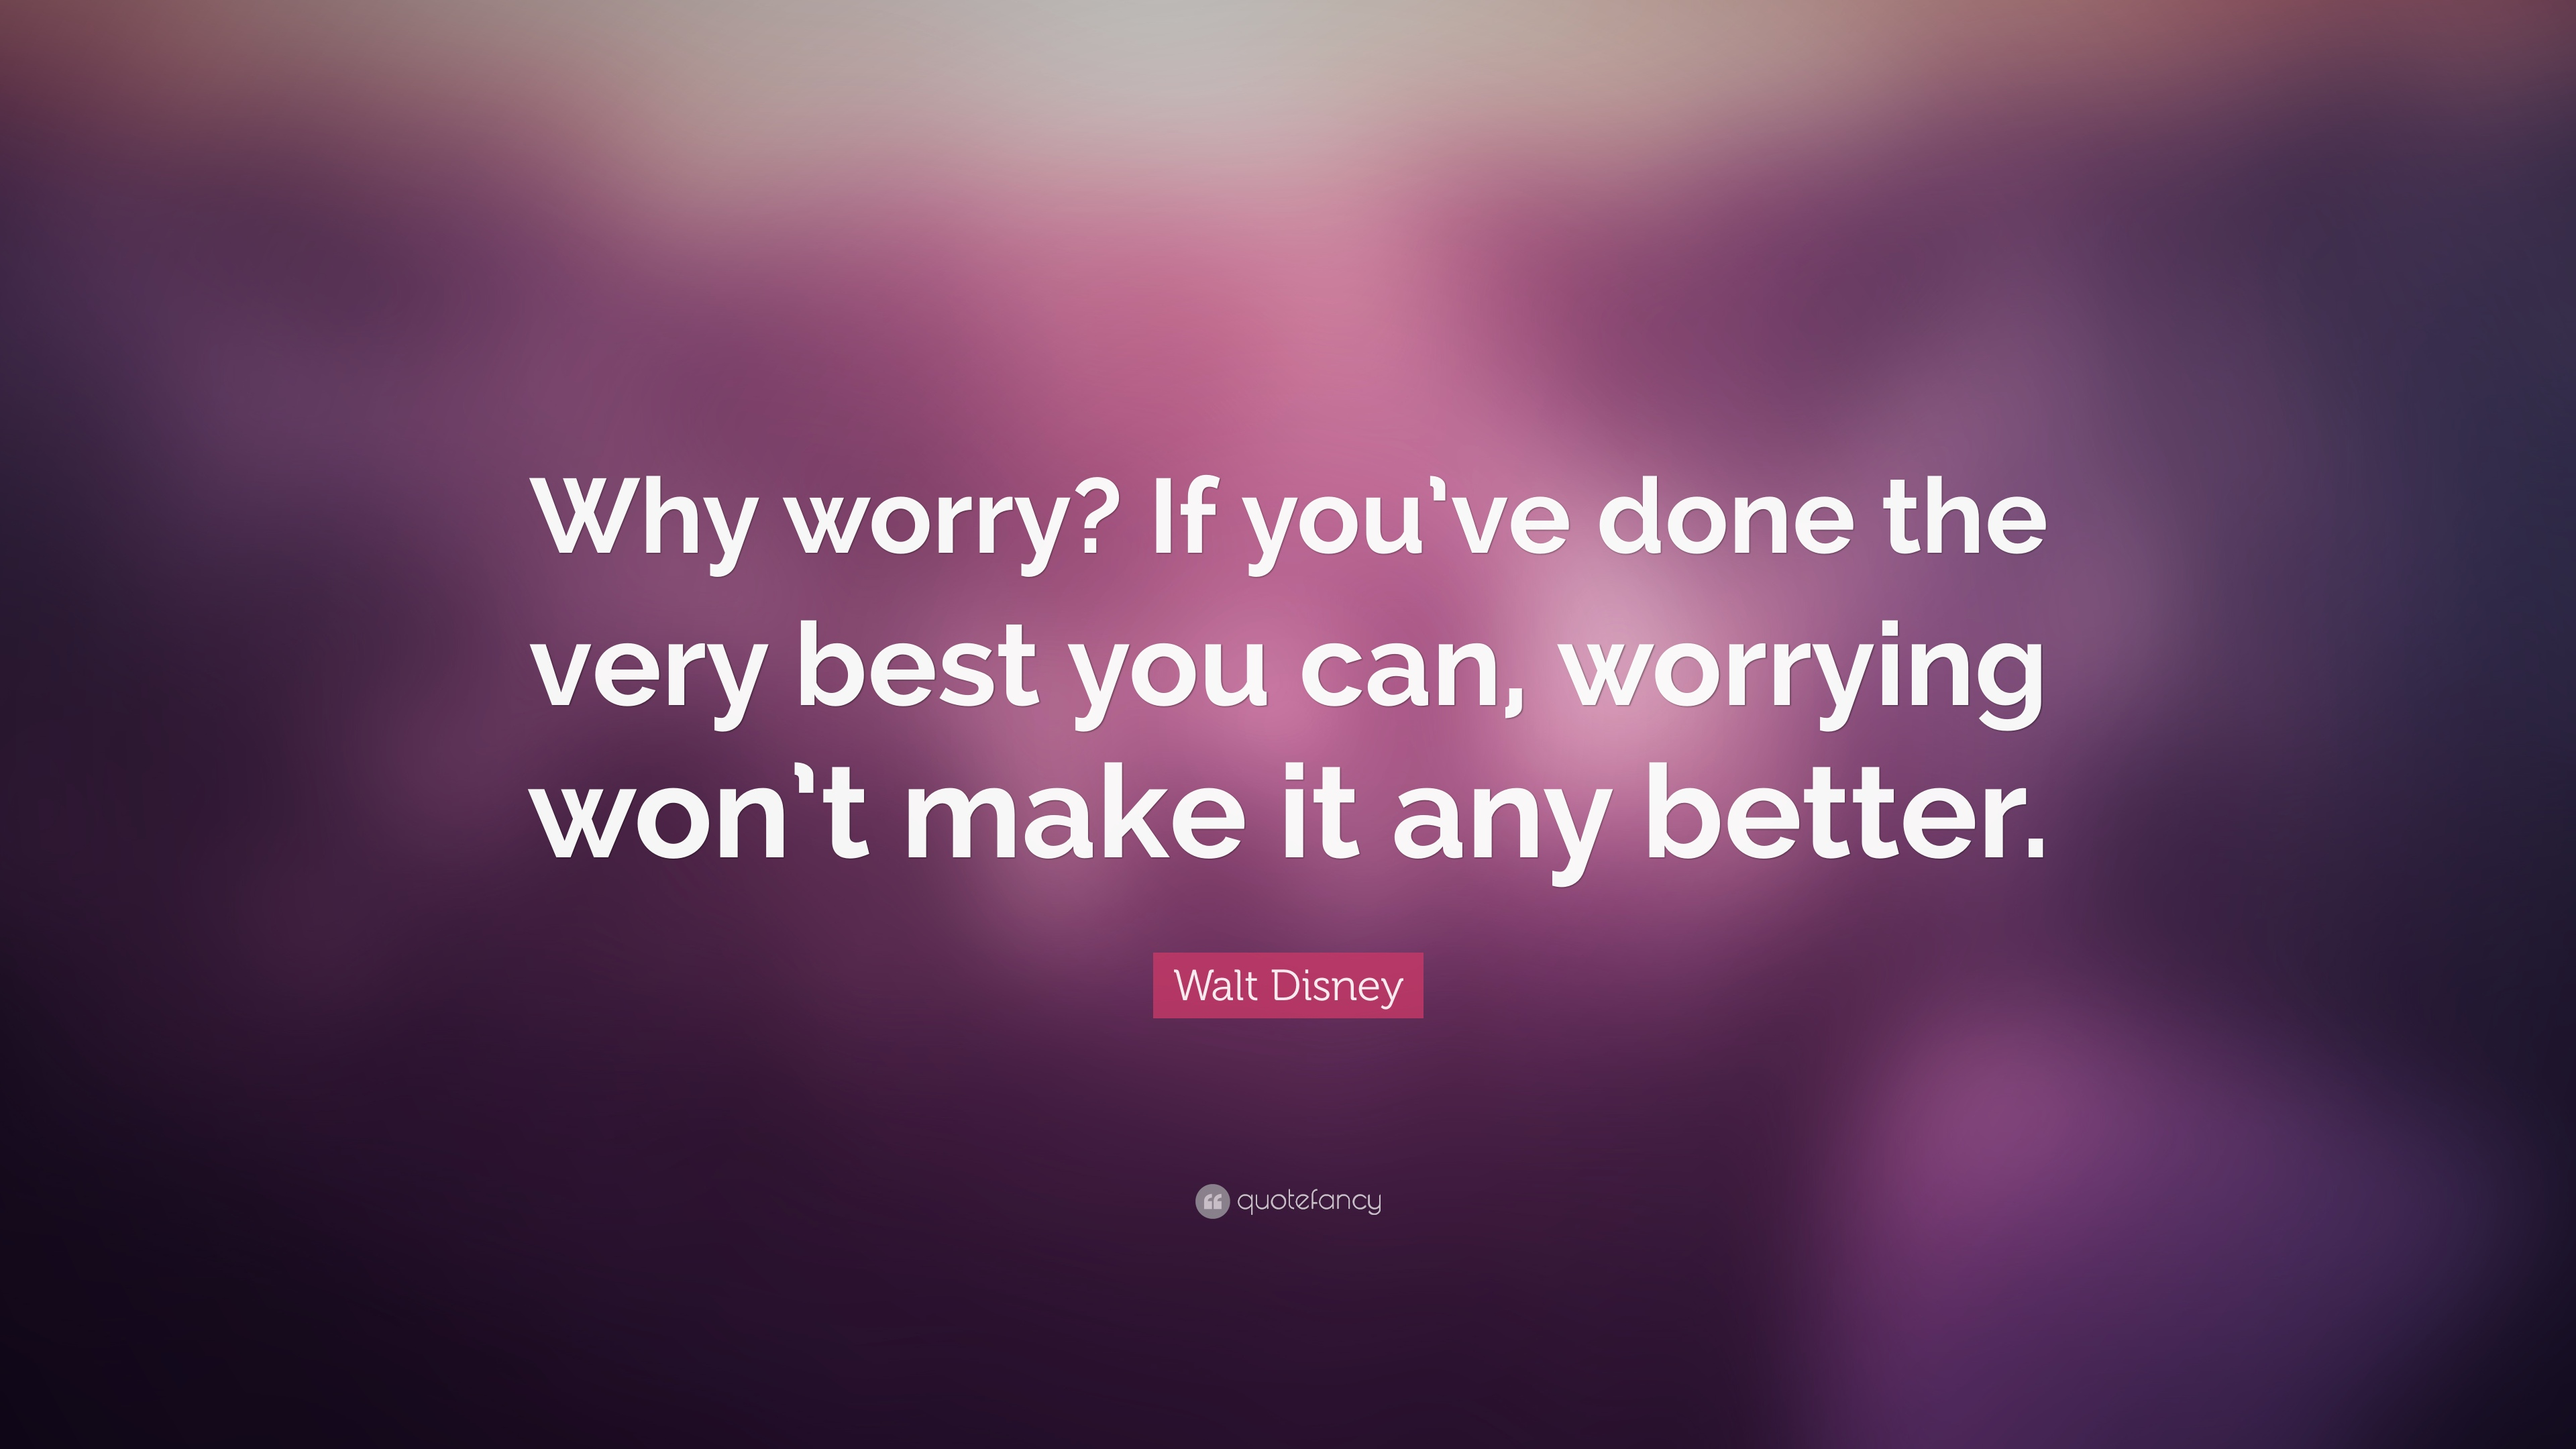 Alice In Wonderland Wallpaper Quotes Walt Disney Quote Why Worry If You Ve Done The Very